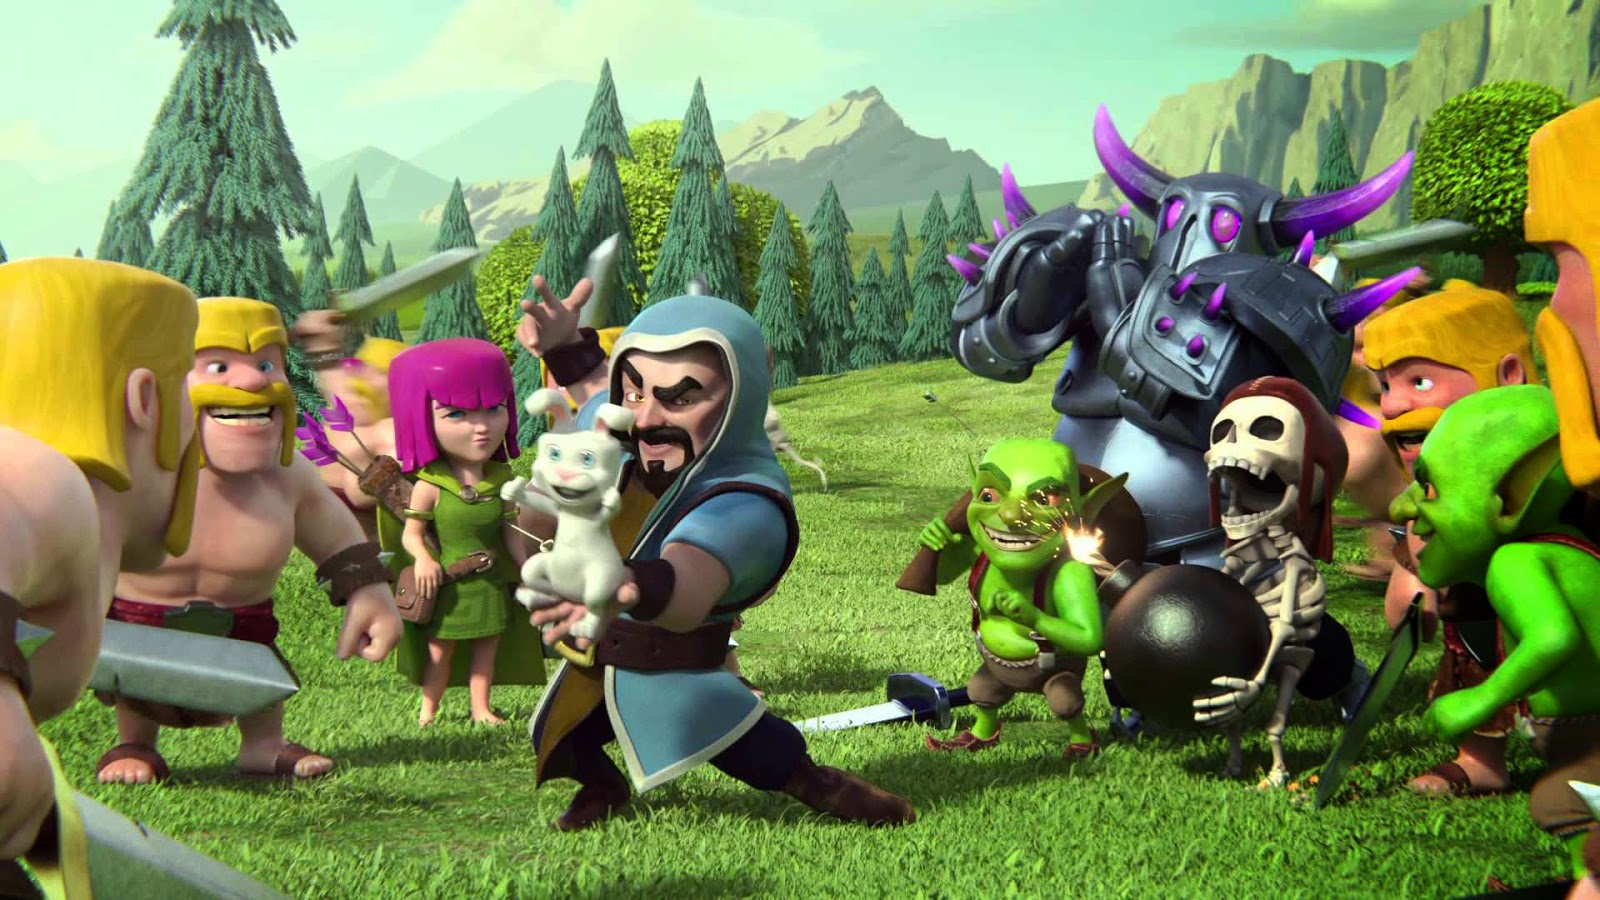 Funny Clash of Clans HD Wallpaper